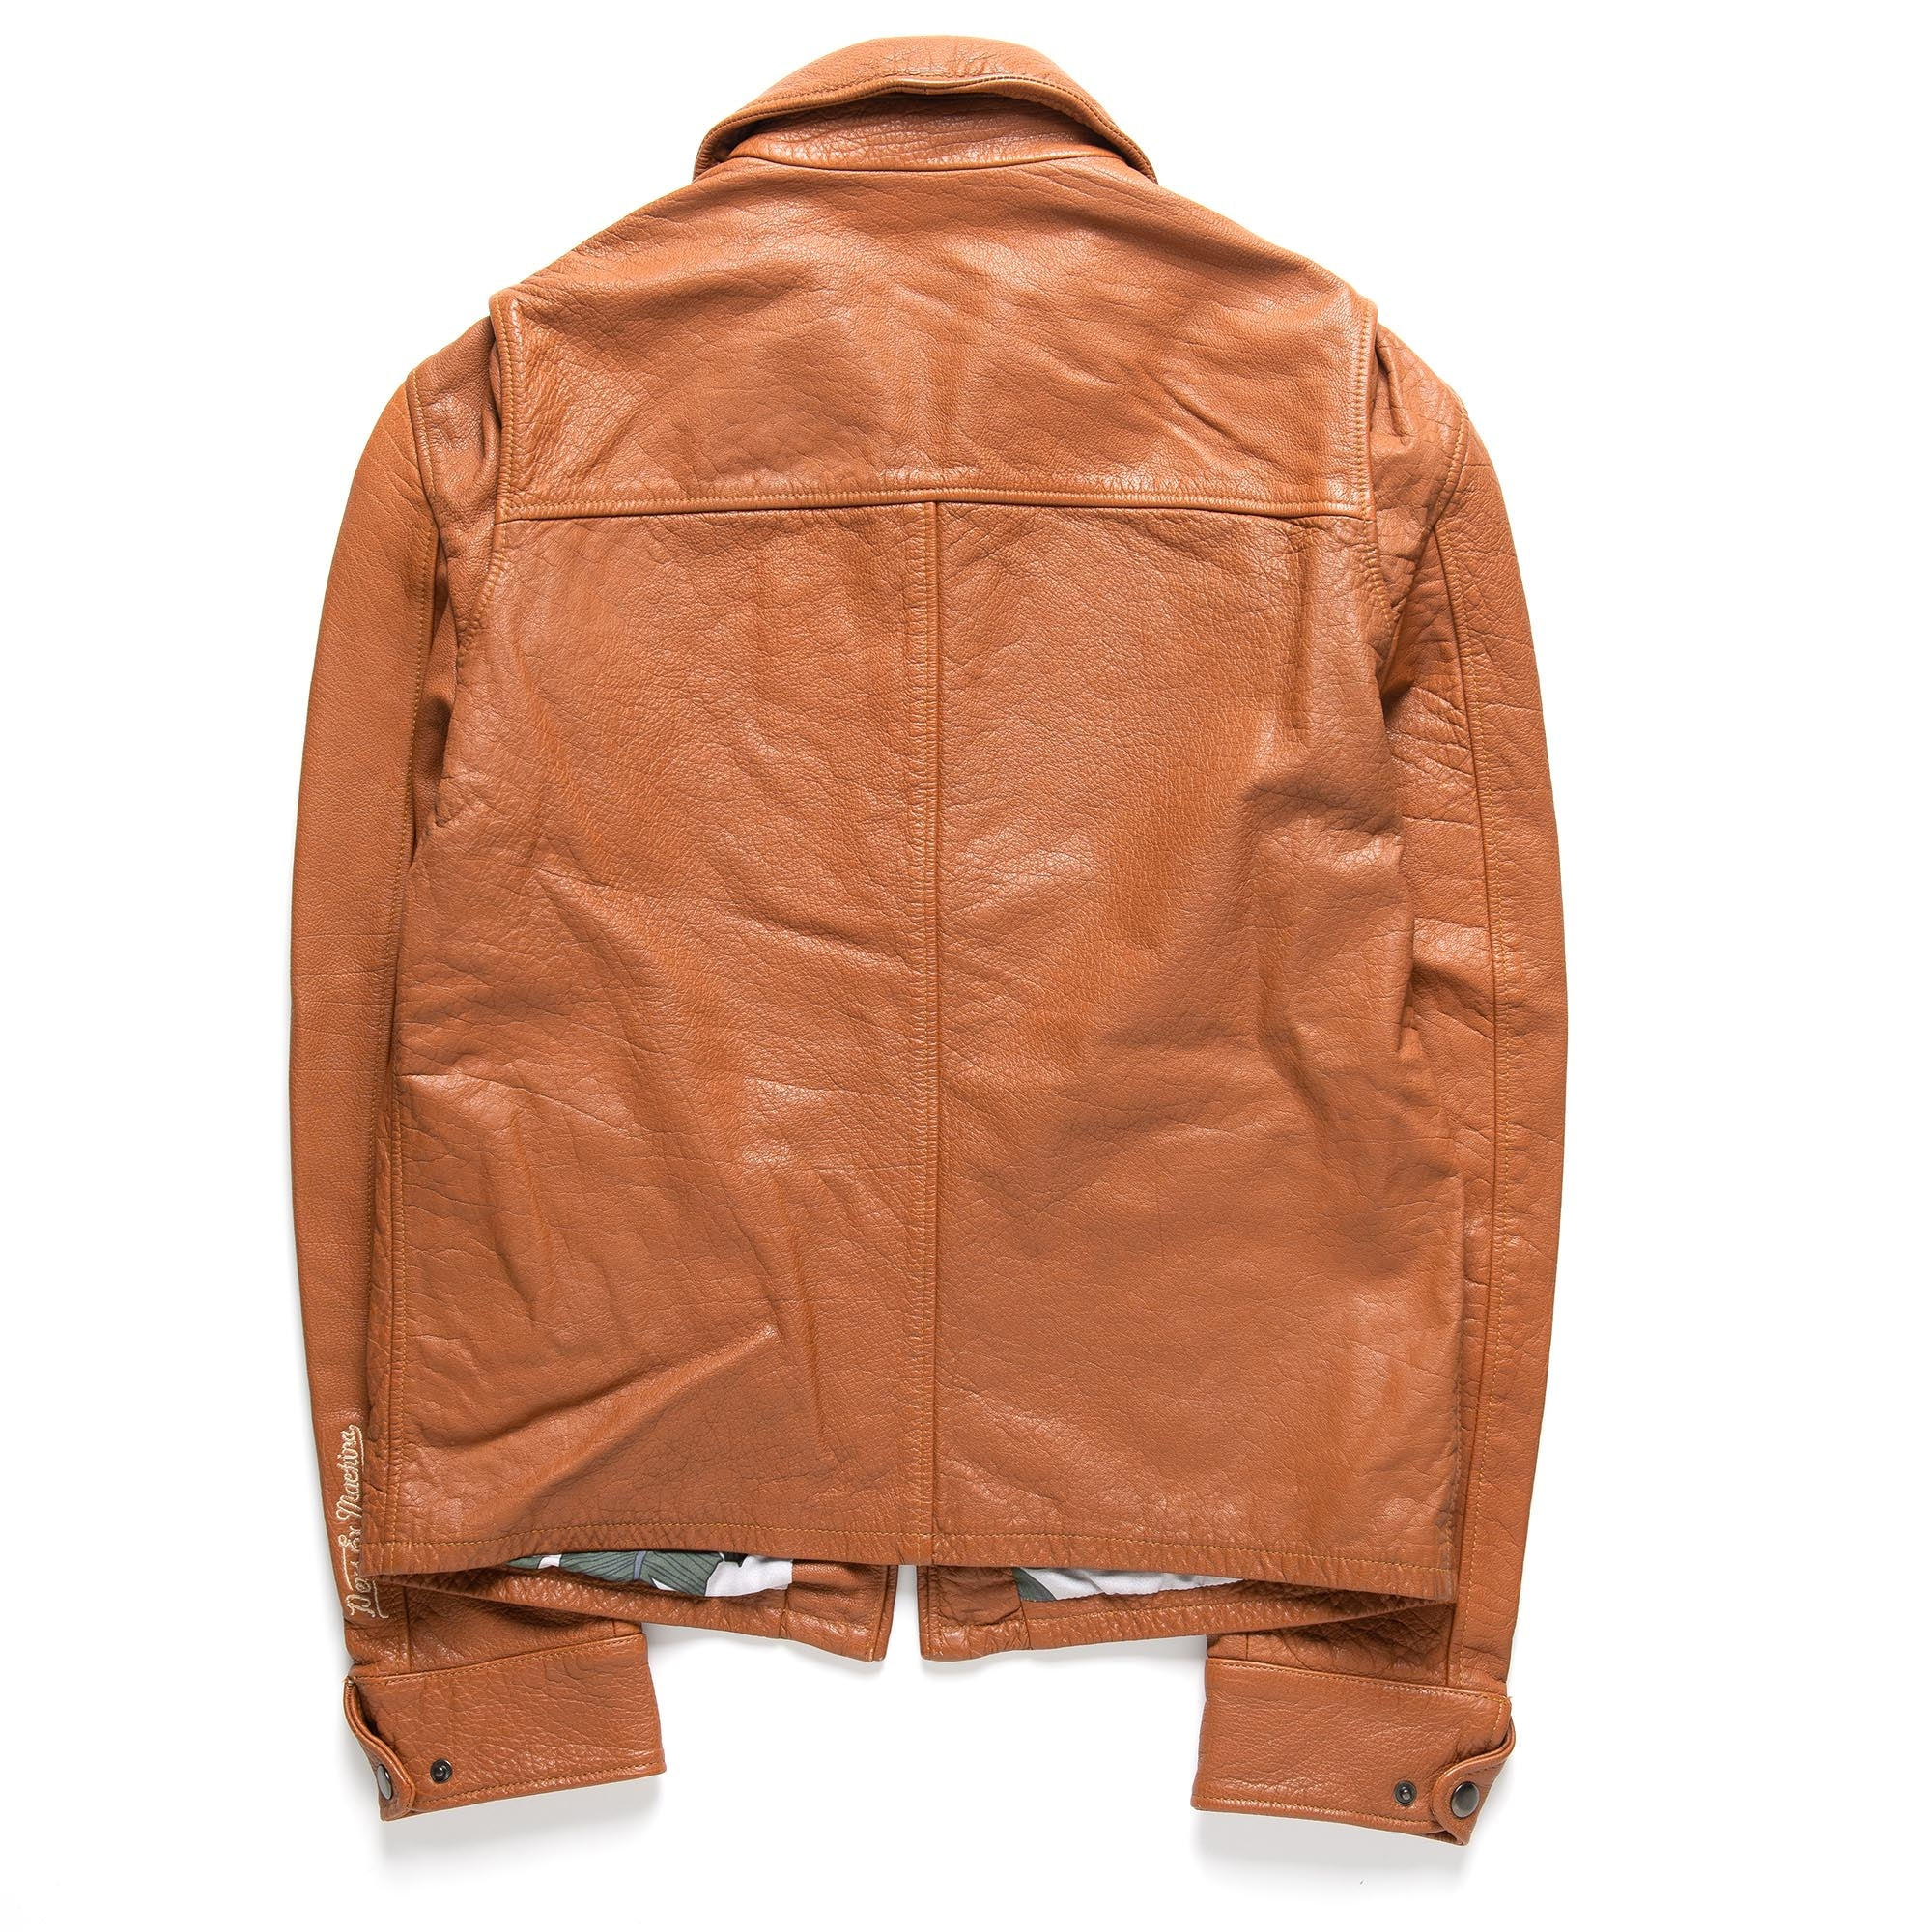 The Patrol Jacket - Caramel